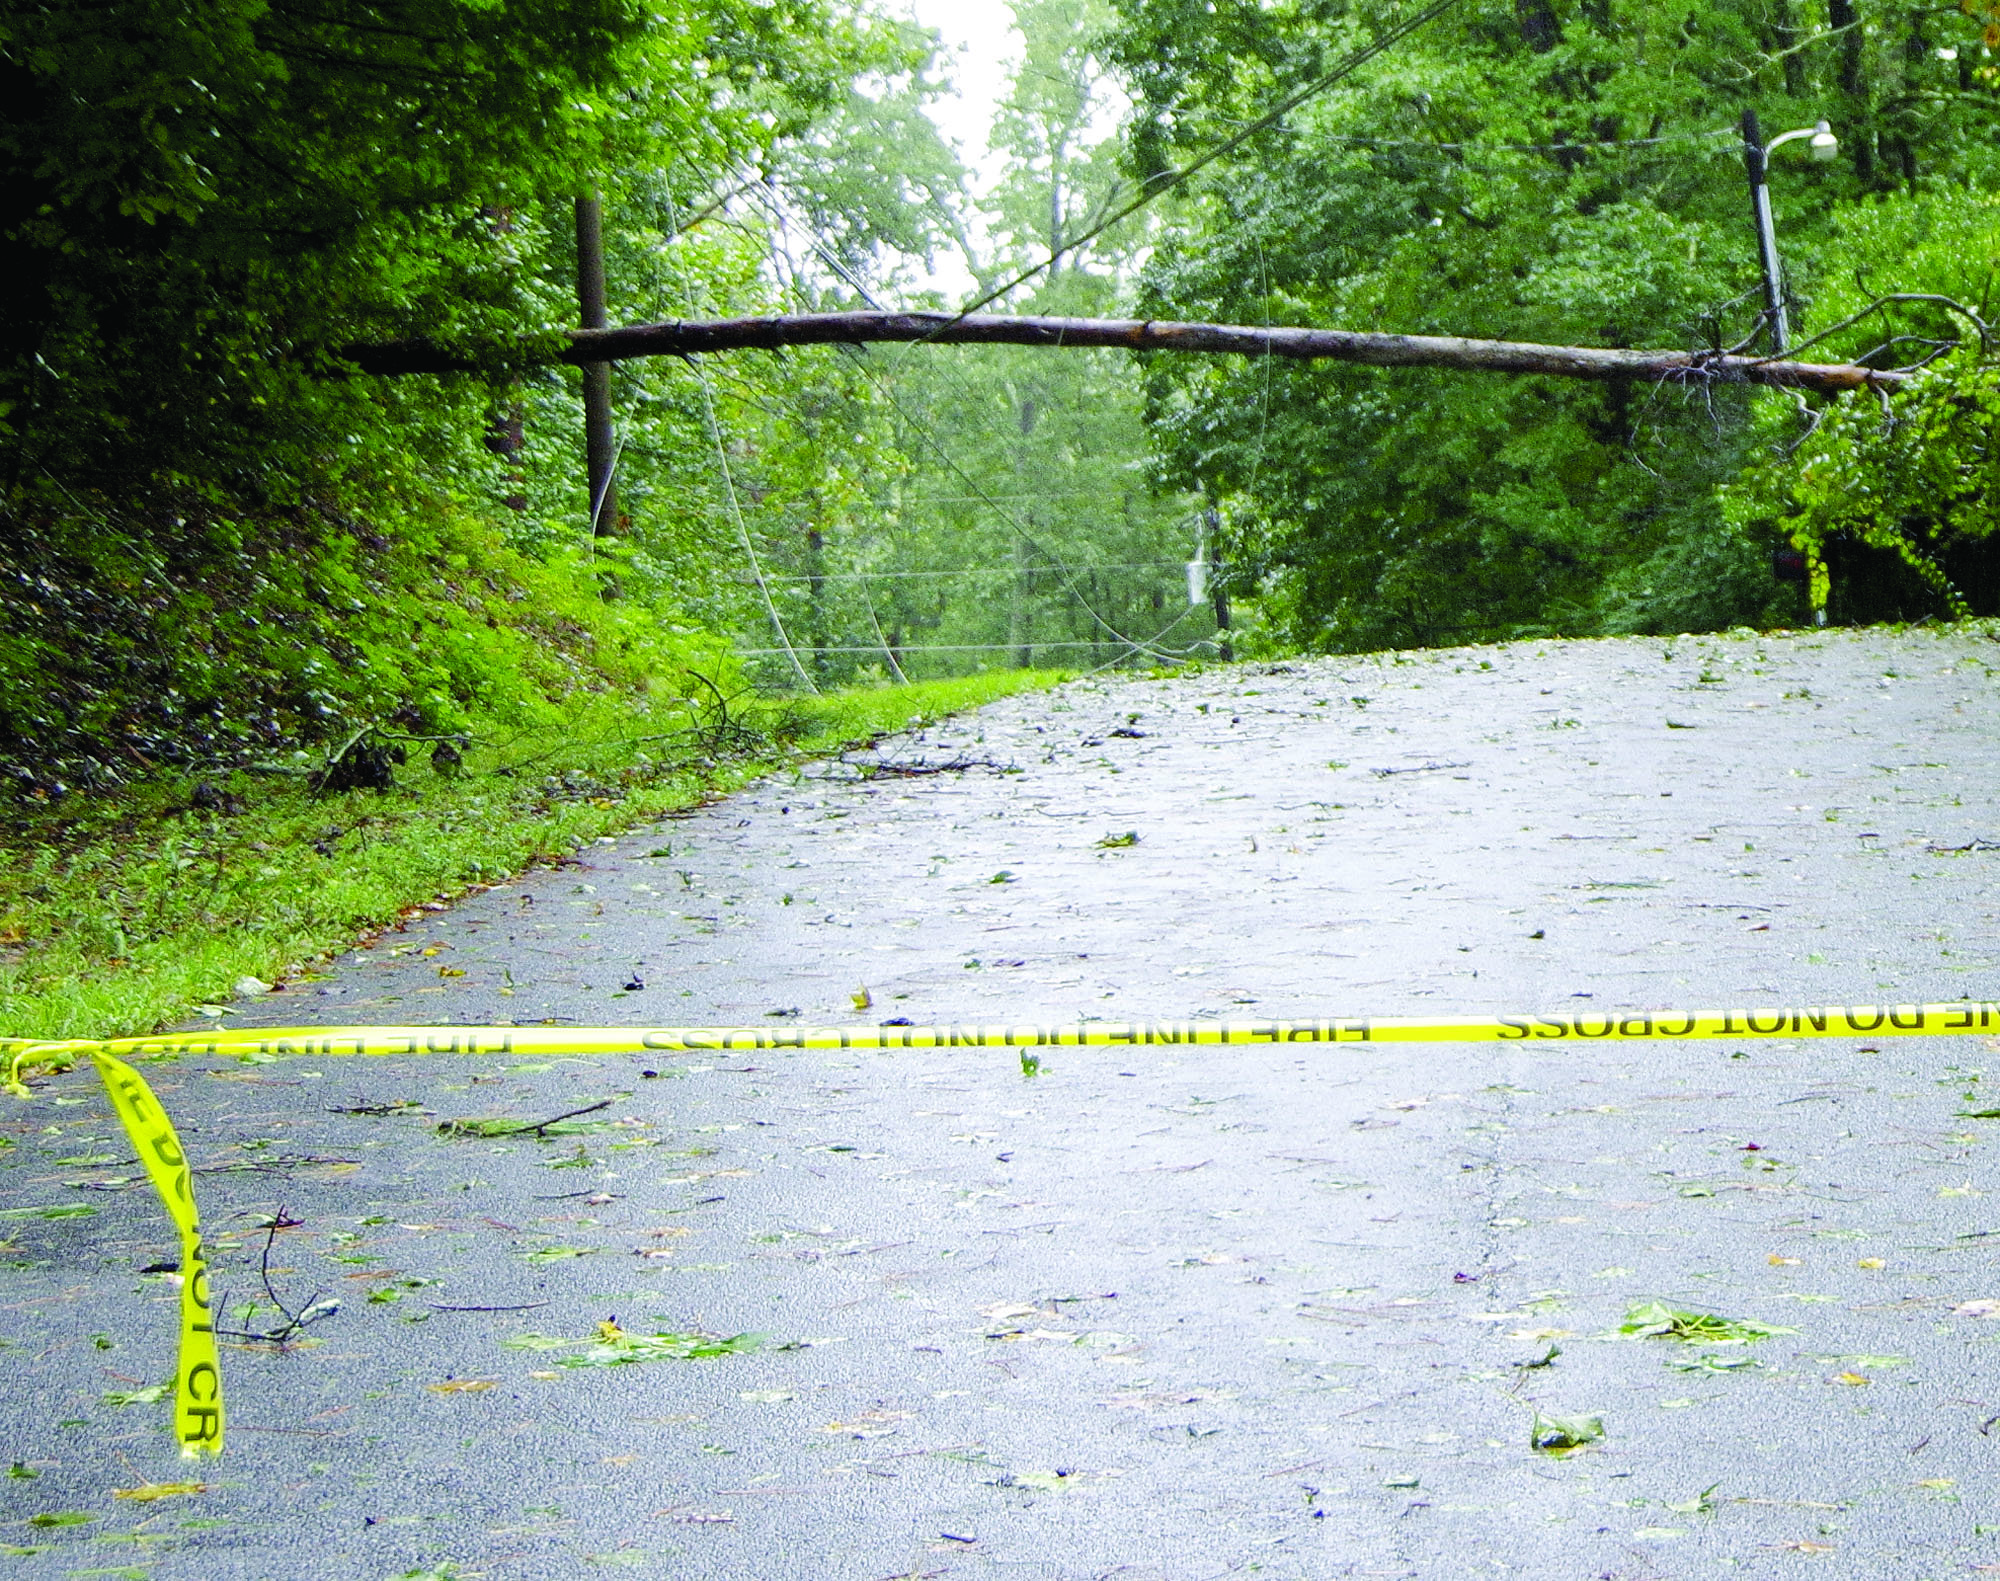 Roadways were marked with tape